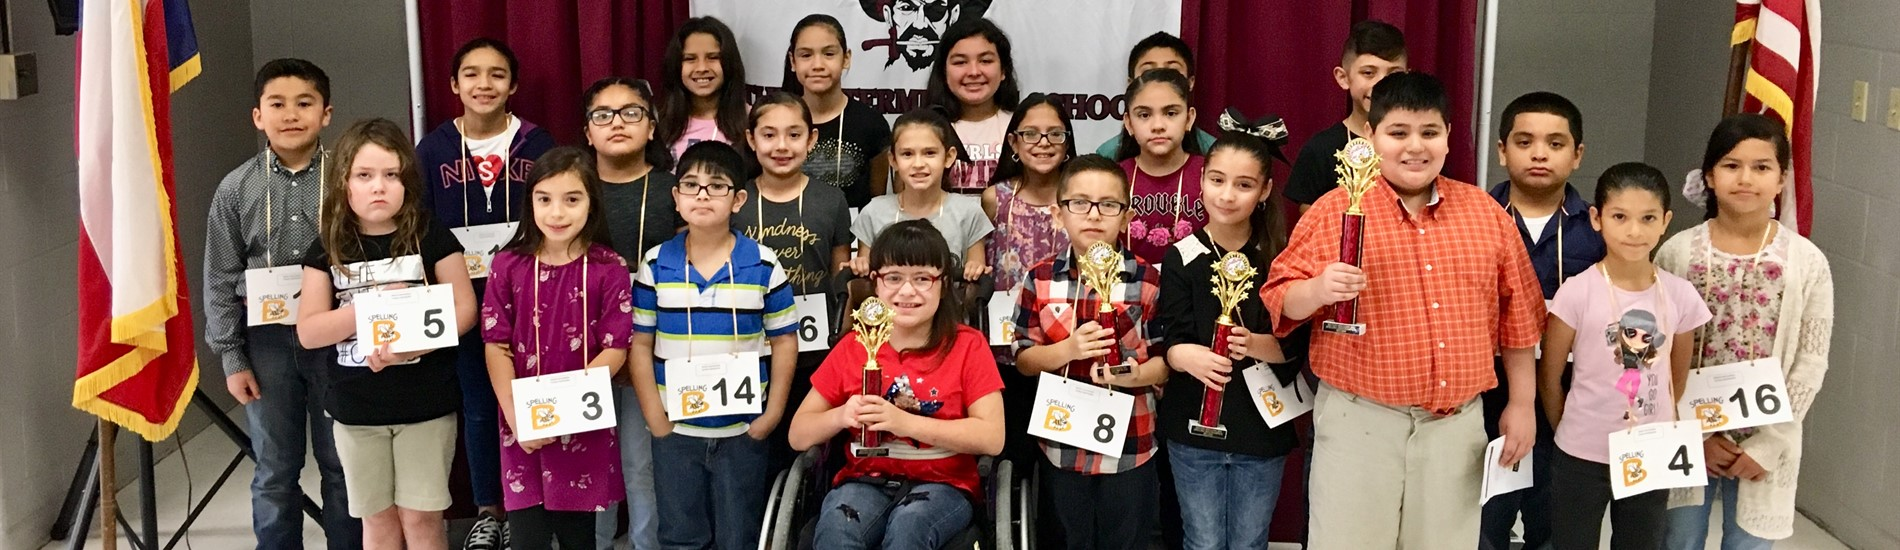 Spelling Bee Group Friday, February 16, 2018